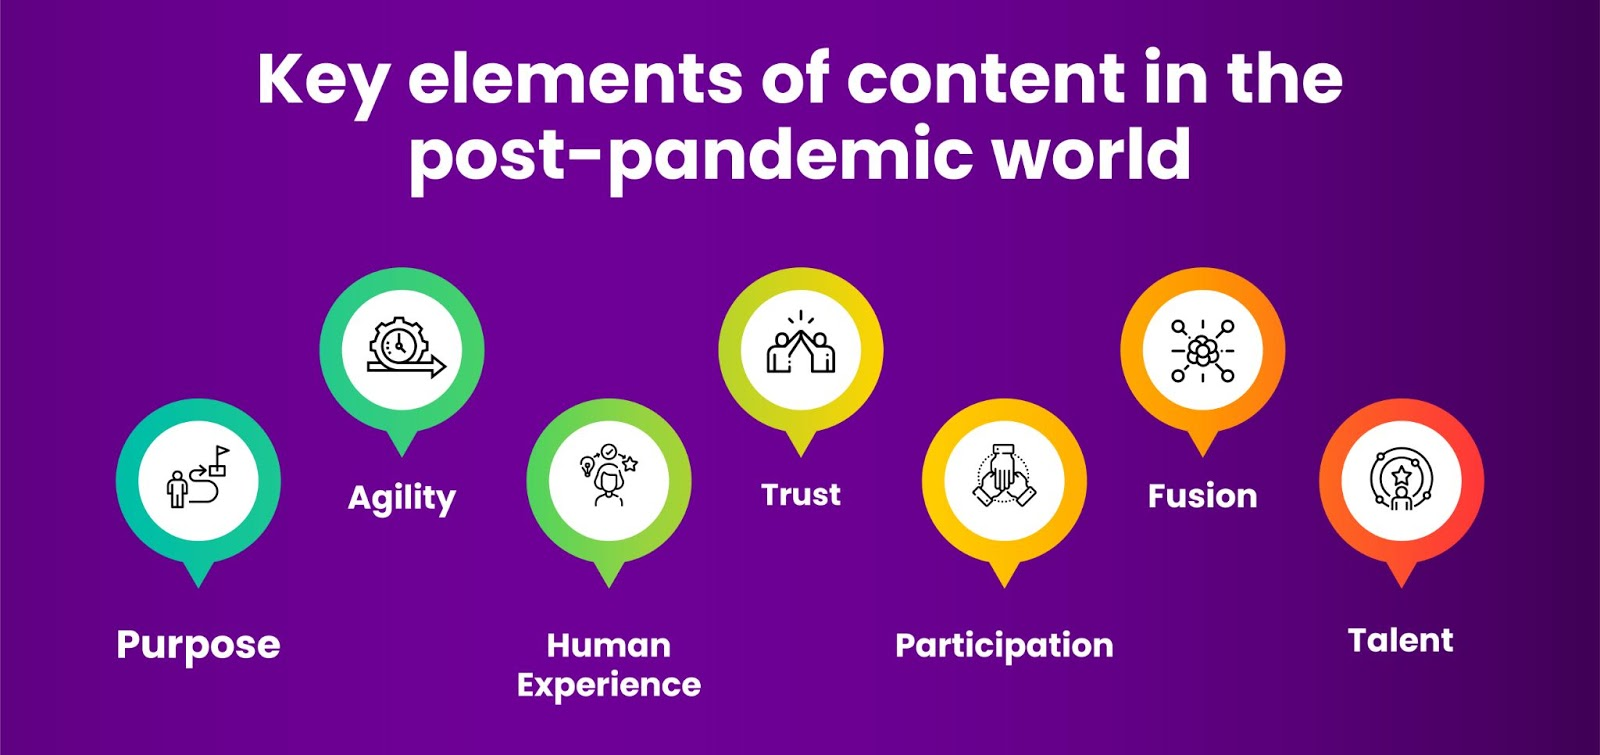 Content Marketing Trends in the post-pandemic world